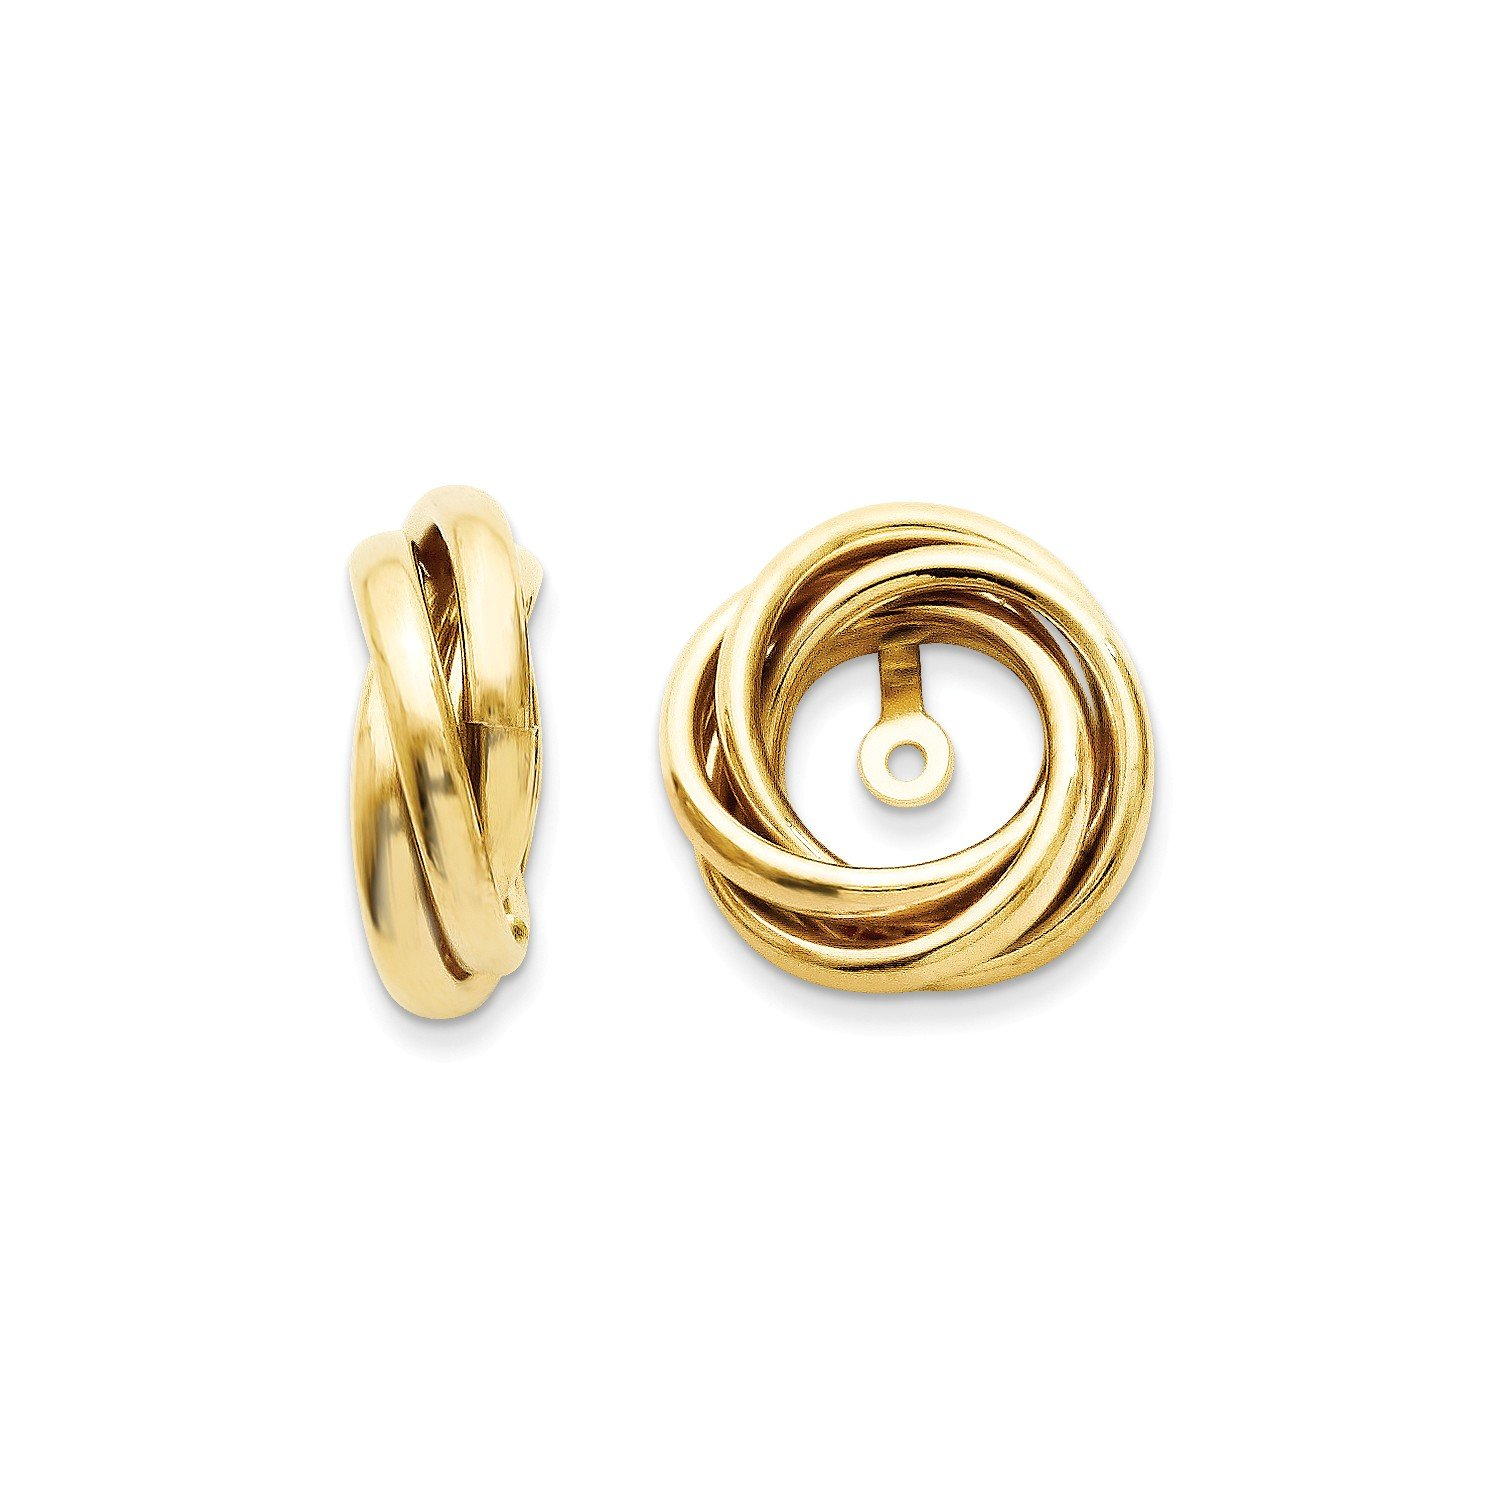 Roy Rose Jewelry 14K Yellow Gold Polished Love Knot Earring Jackets 13mm length by Roy Rose Jewelry